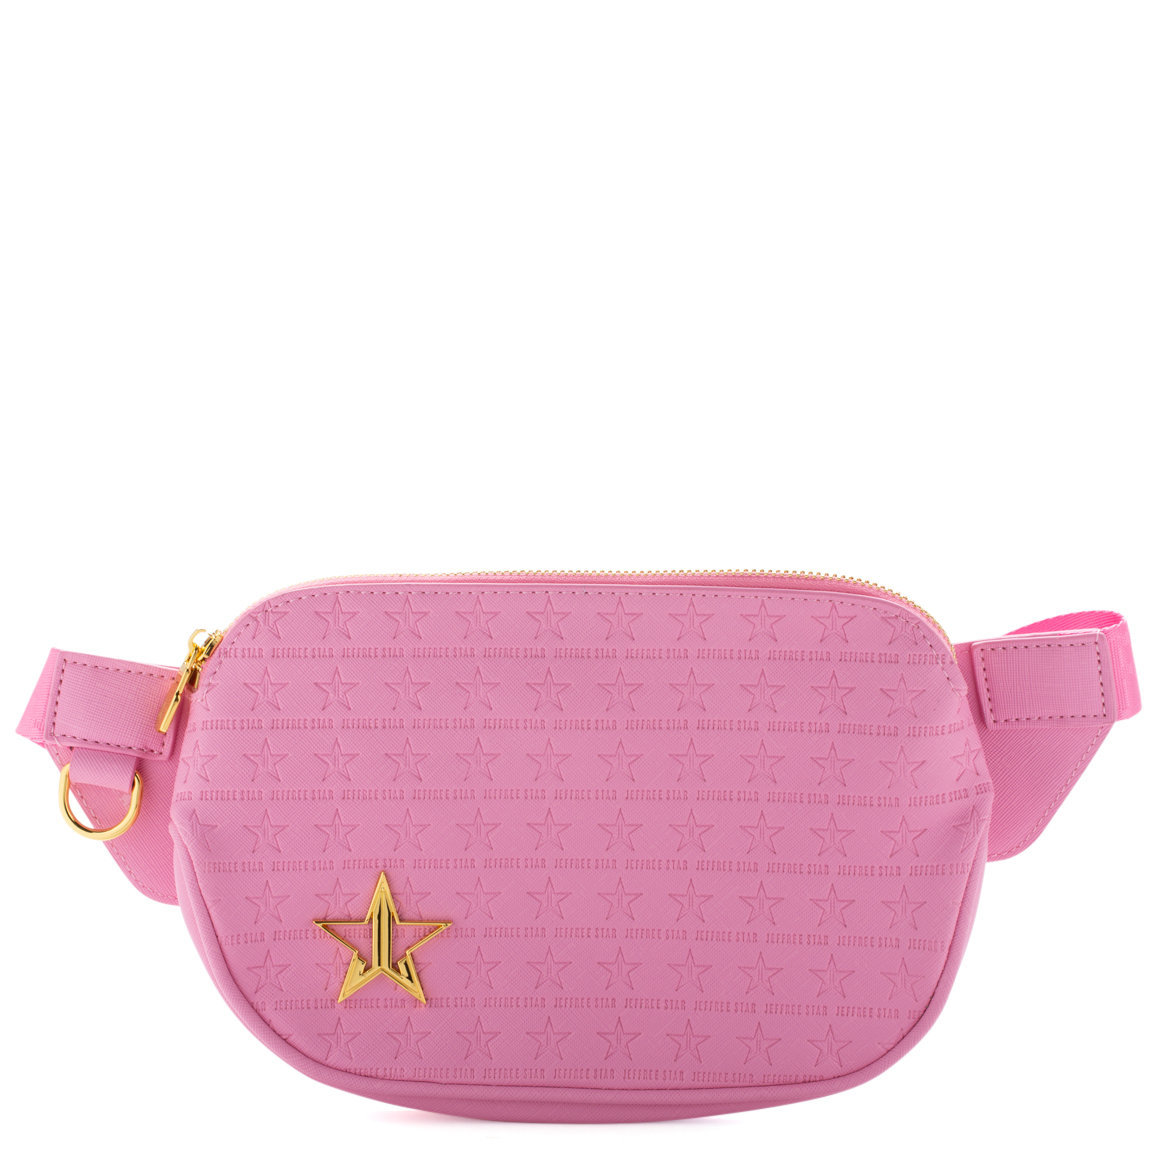 Jeffree Star Cosmetics Cross Body Bag product smear.